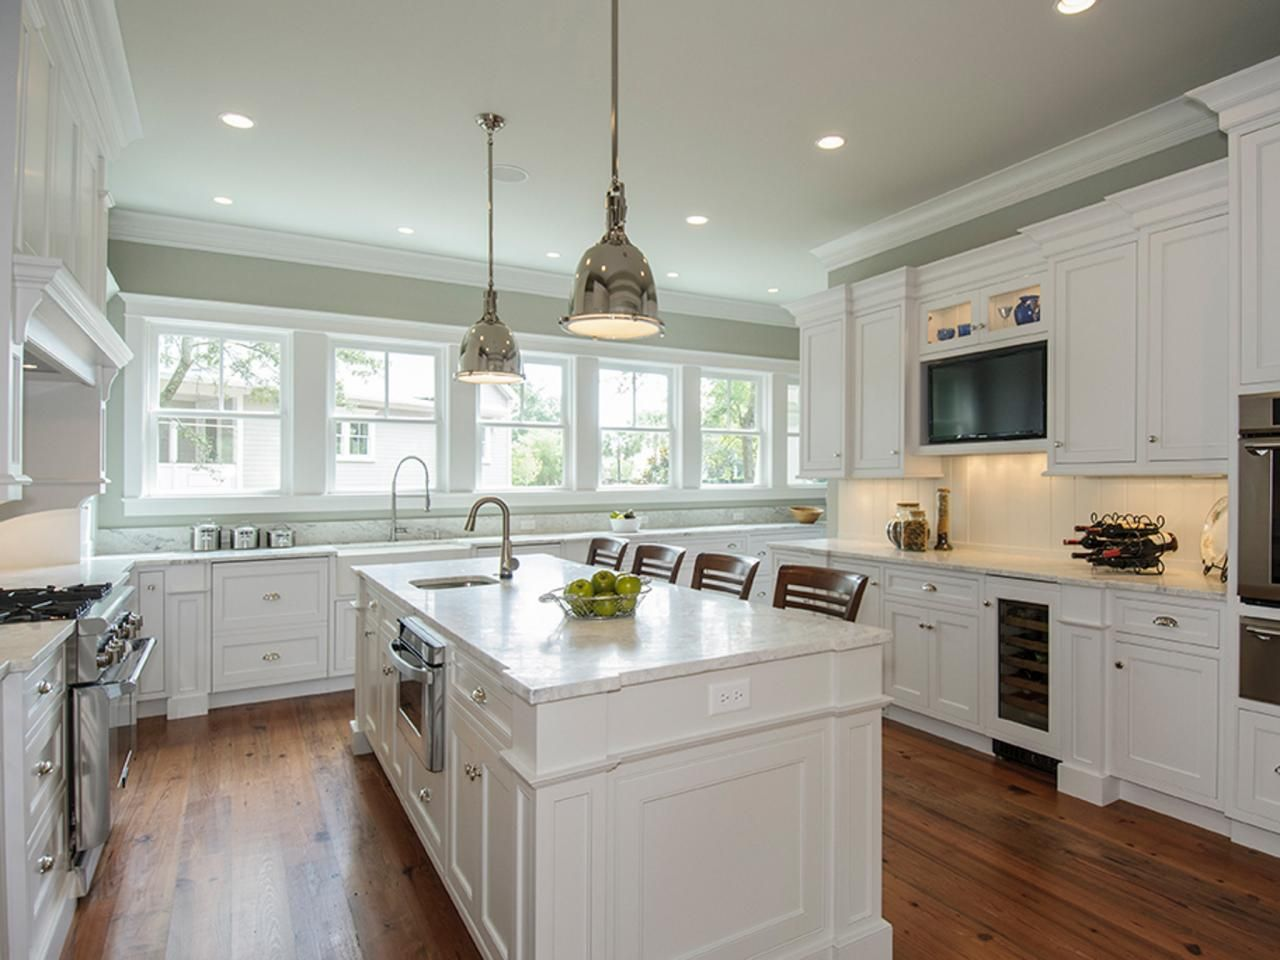 painting kitchen cabinets antique white: hgtv pictures, ideas